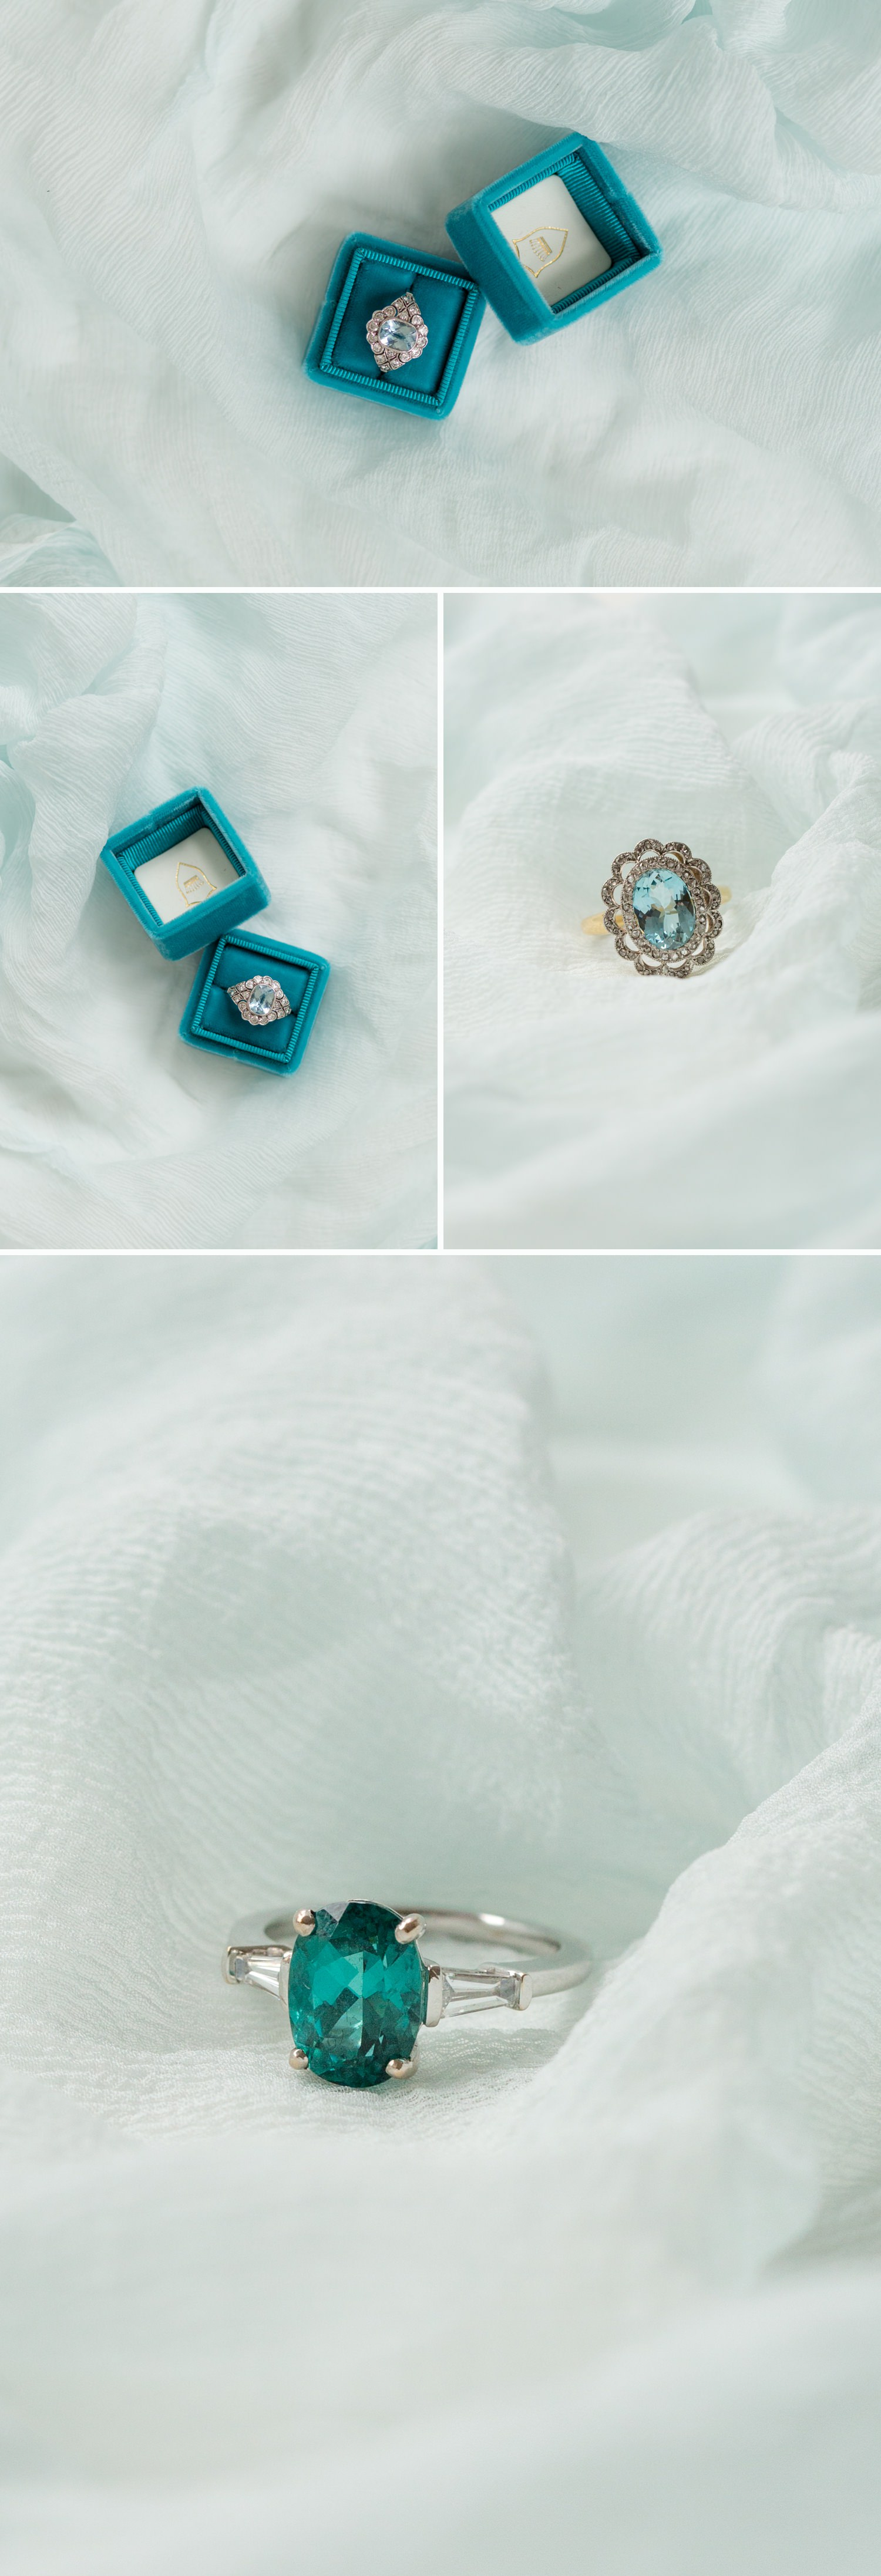 timeless engagement rings, deep blue and green stoned engagement rings